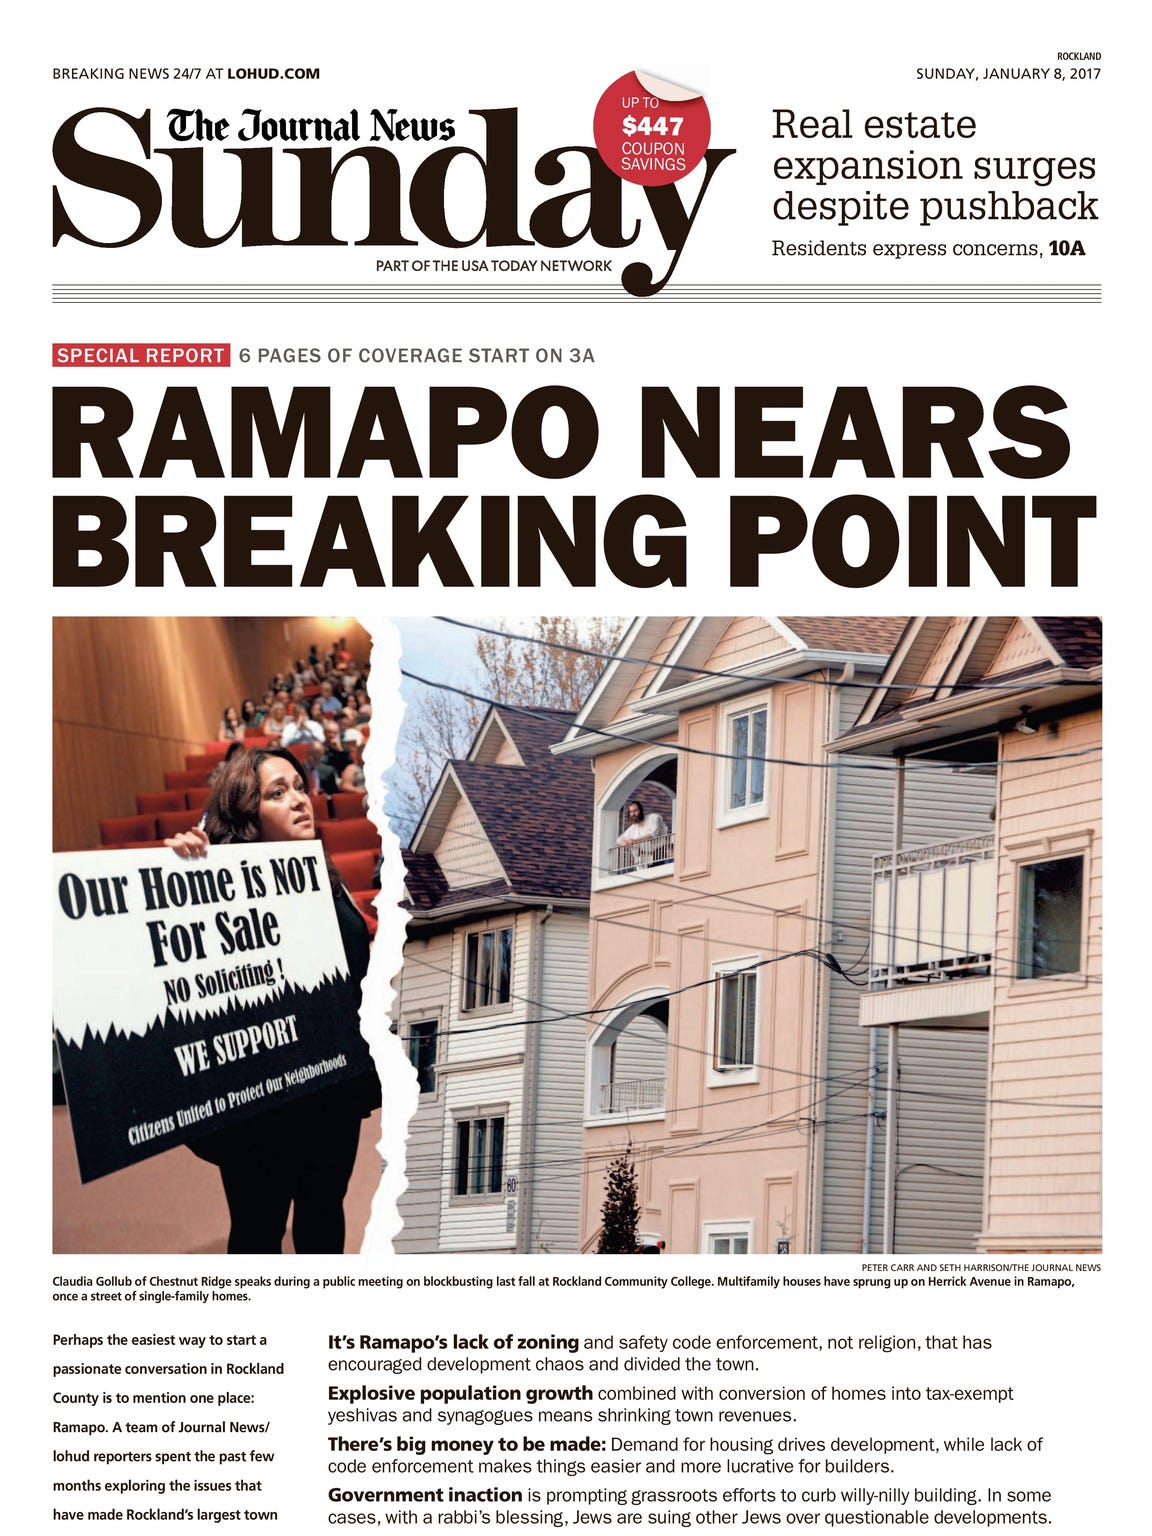 Jan. 8 Rockland edition of the Journal News